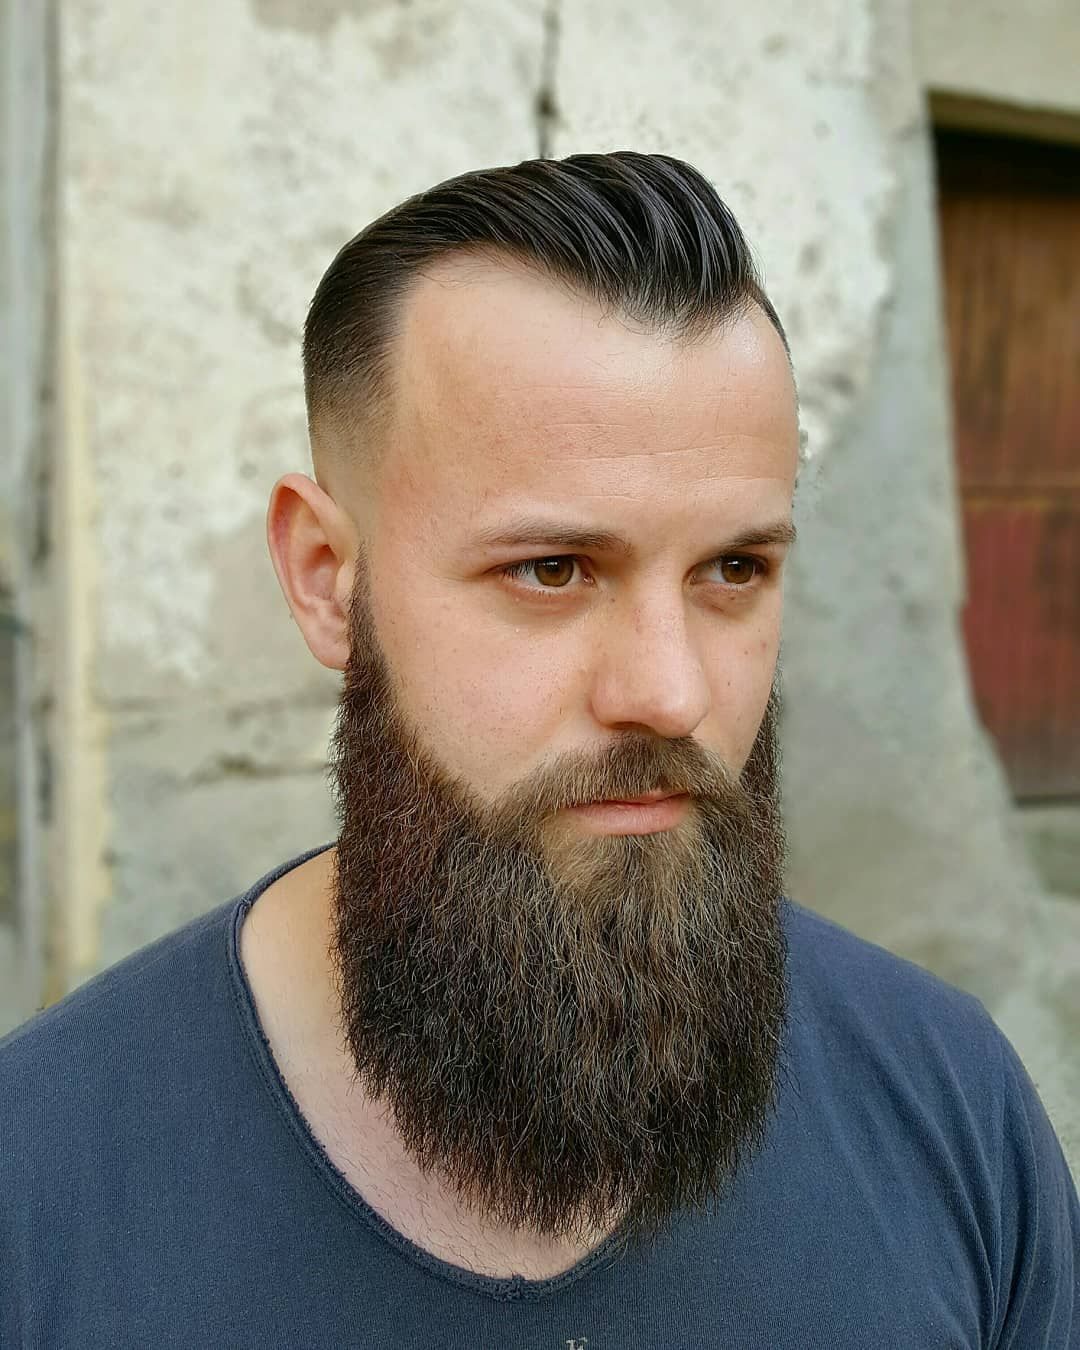 Subtle Pompadour Heavy Beard Thin Hair Men Hairstyles For Thin Hair Mens Hairstyles